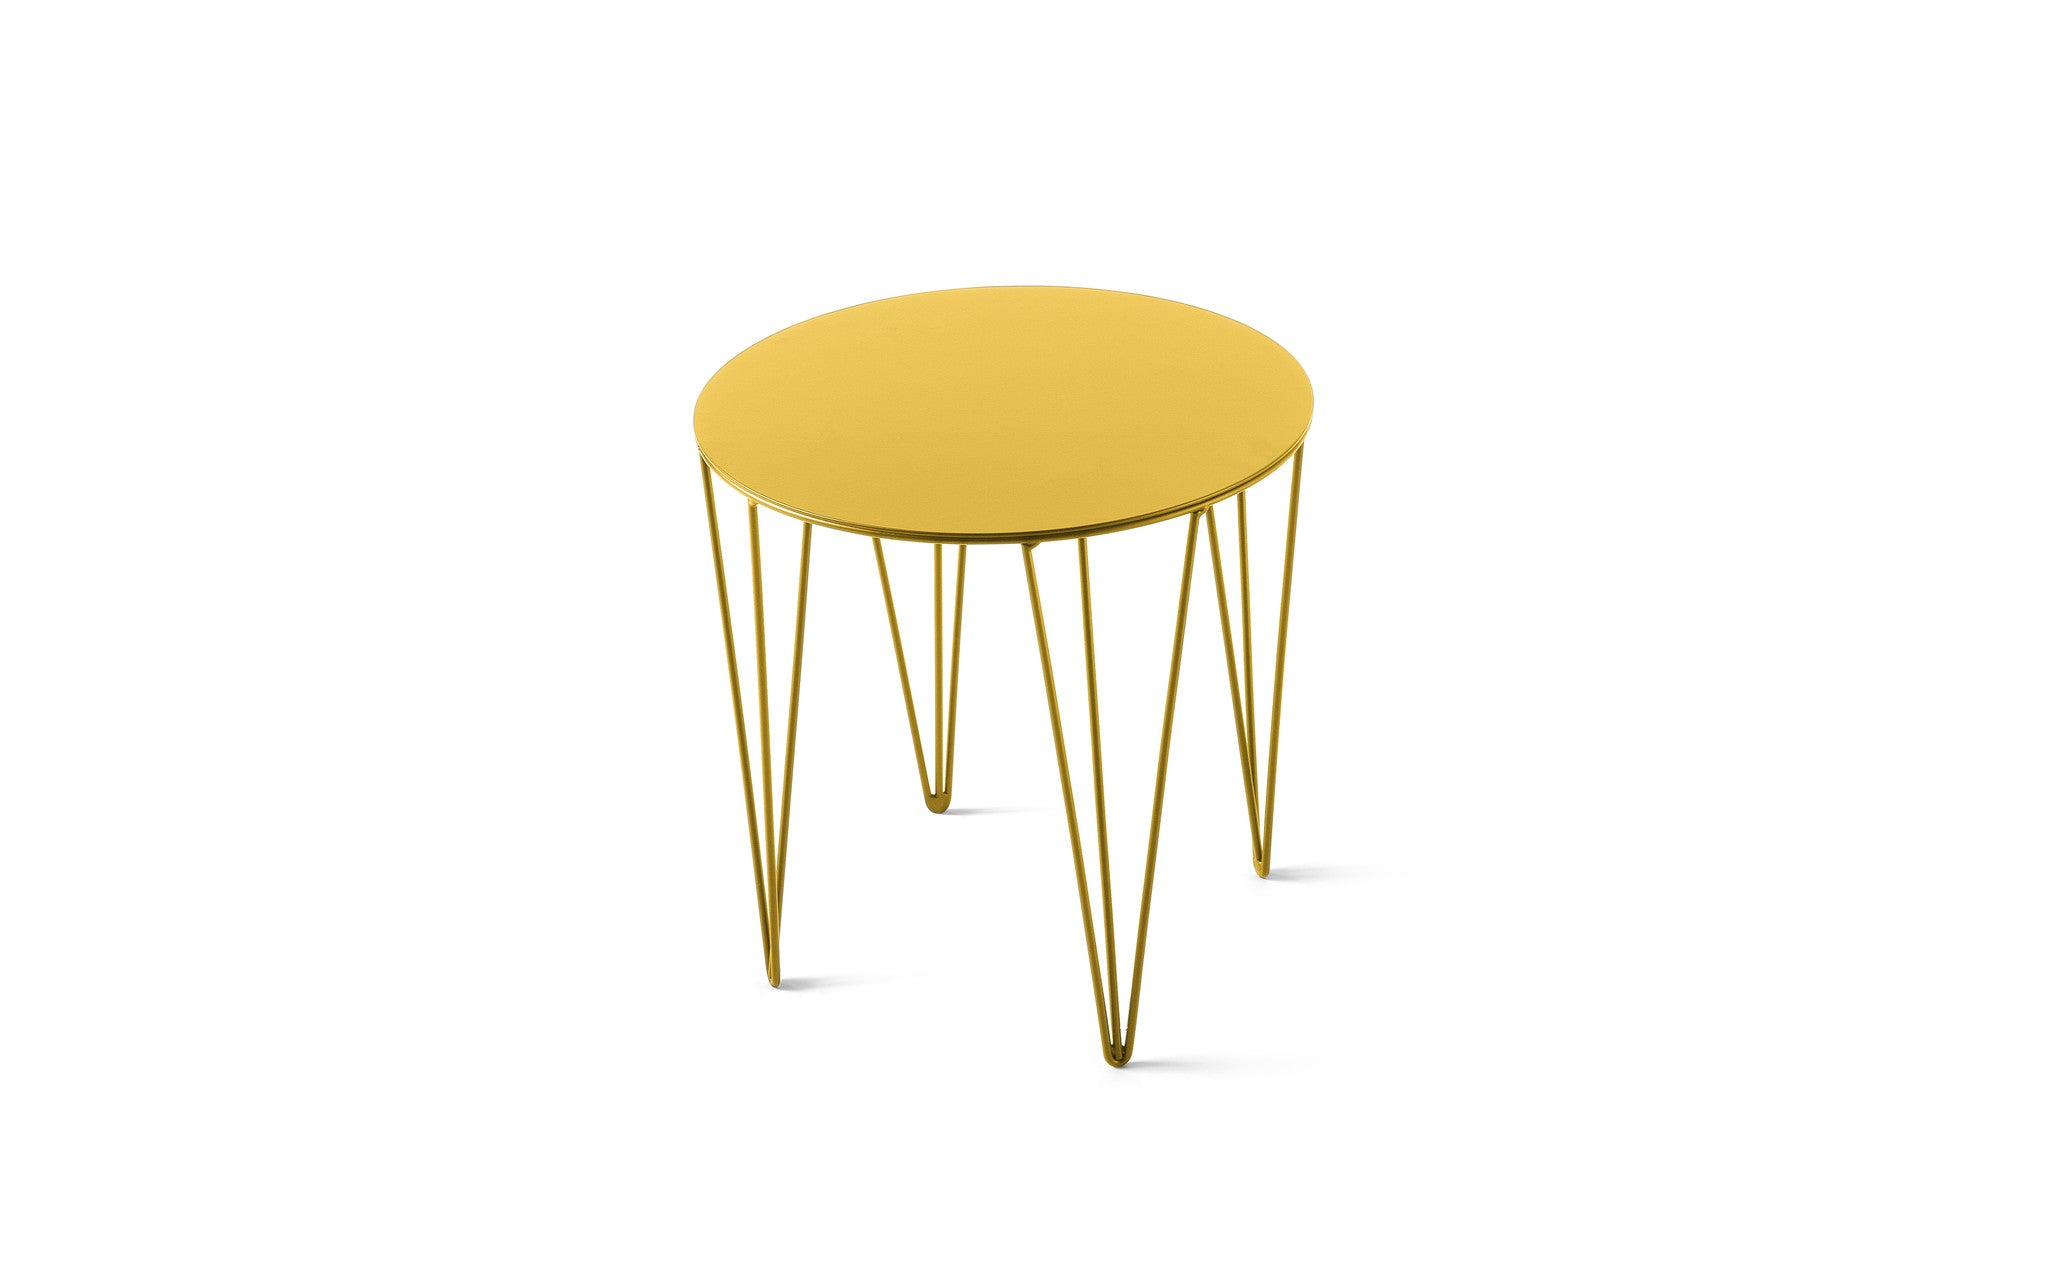 ATIPICO TRAFFIC YELLOW SMALL ROUND METAL SIDE TABLE